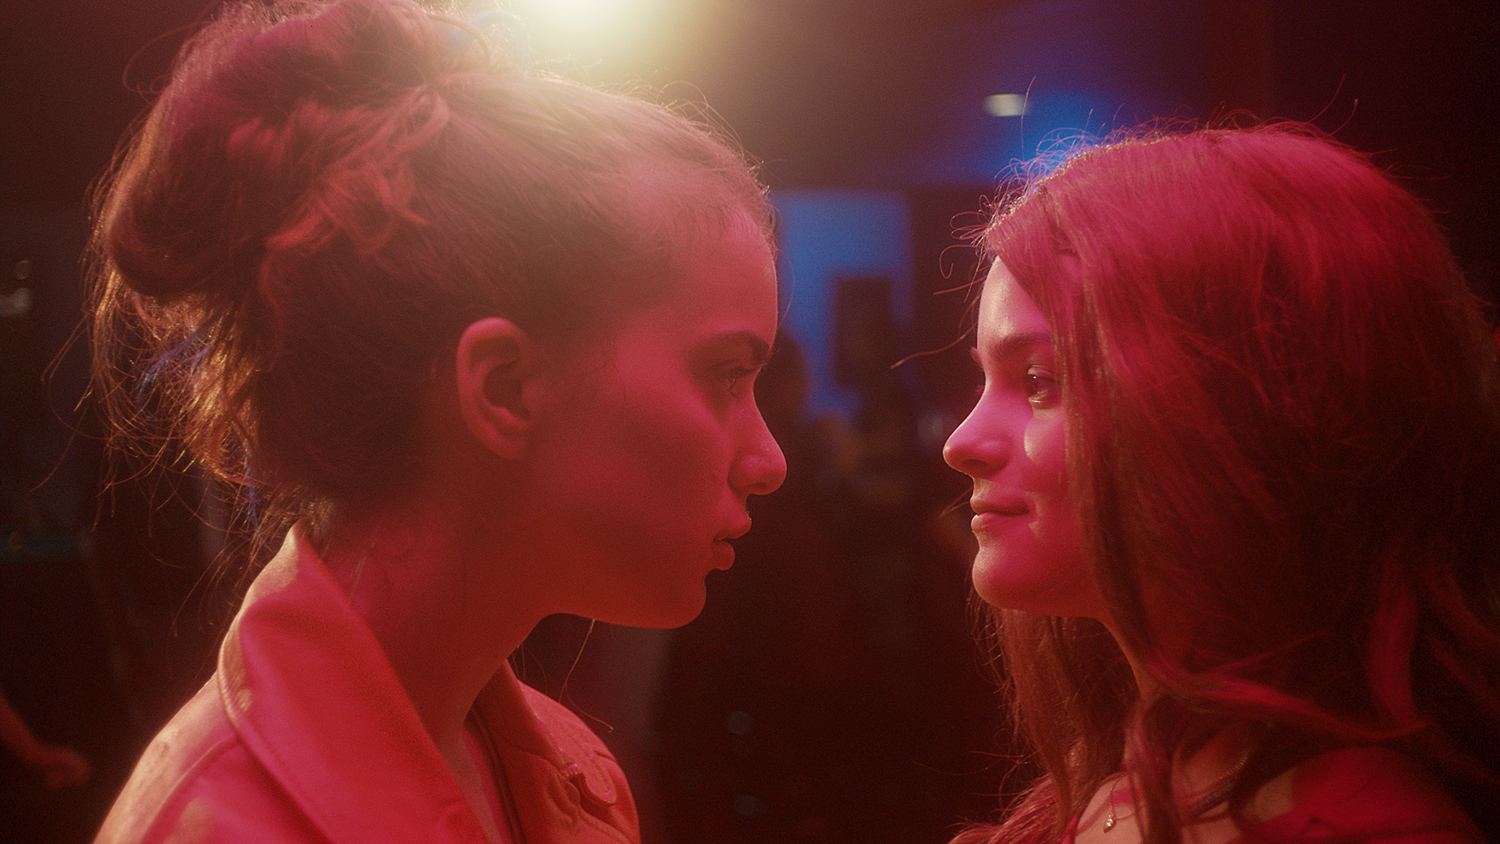 Anne and Sasha stare at one another in a club setting with pink lighting